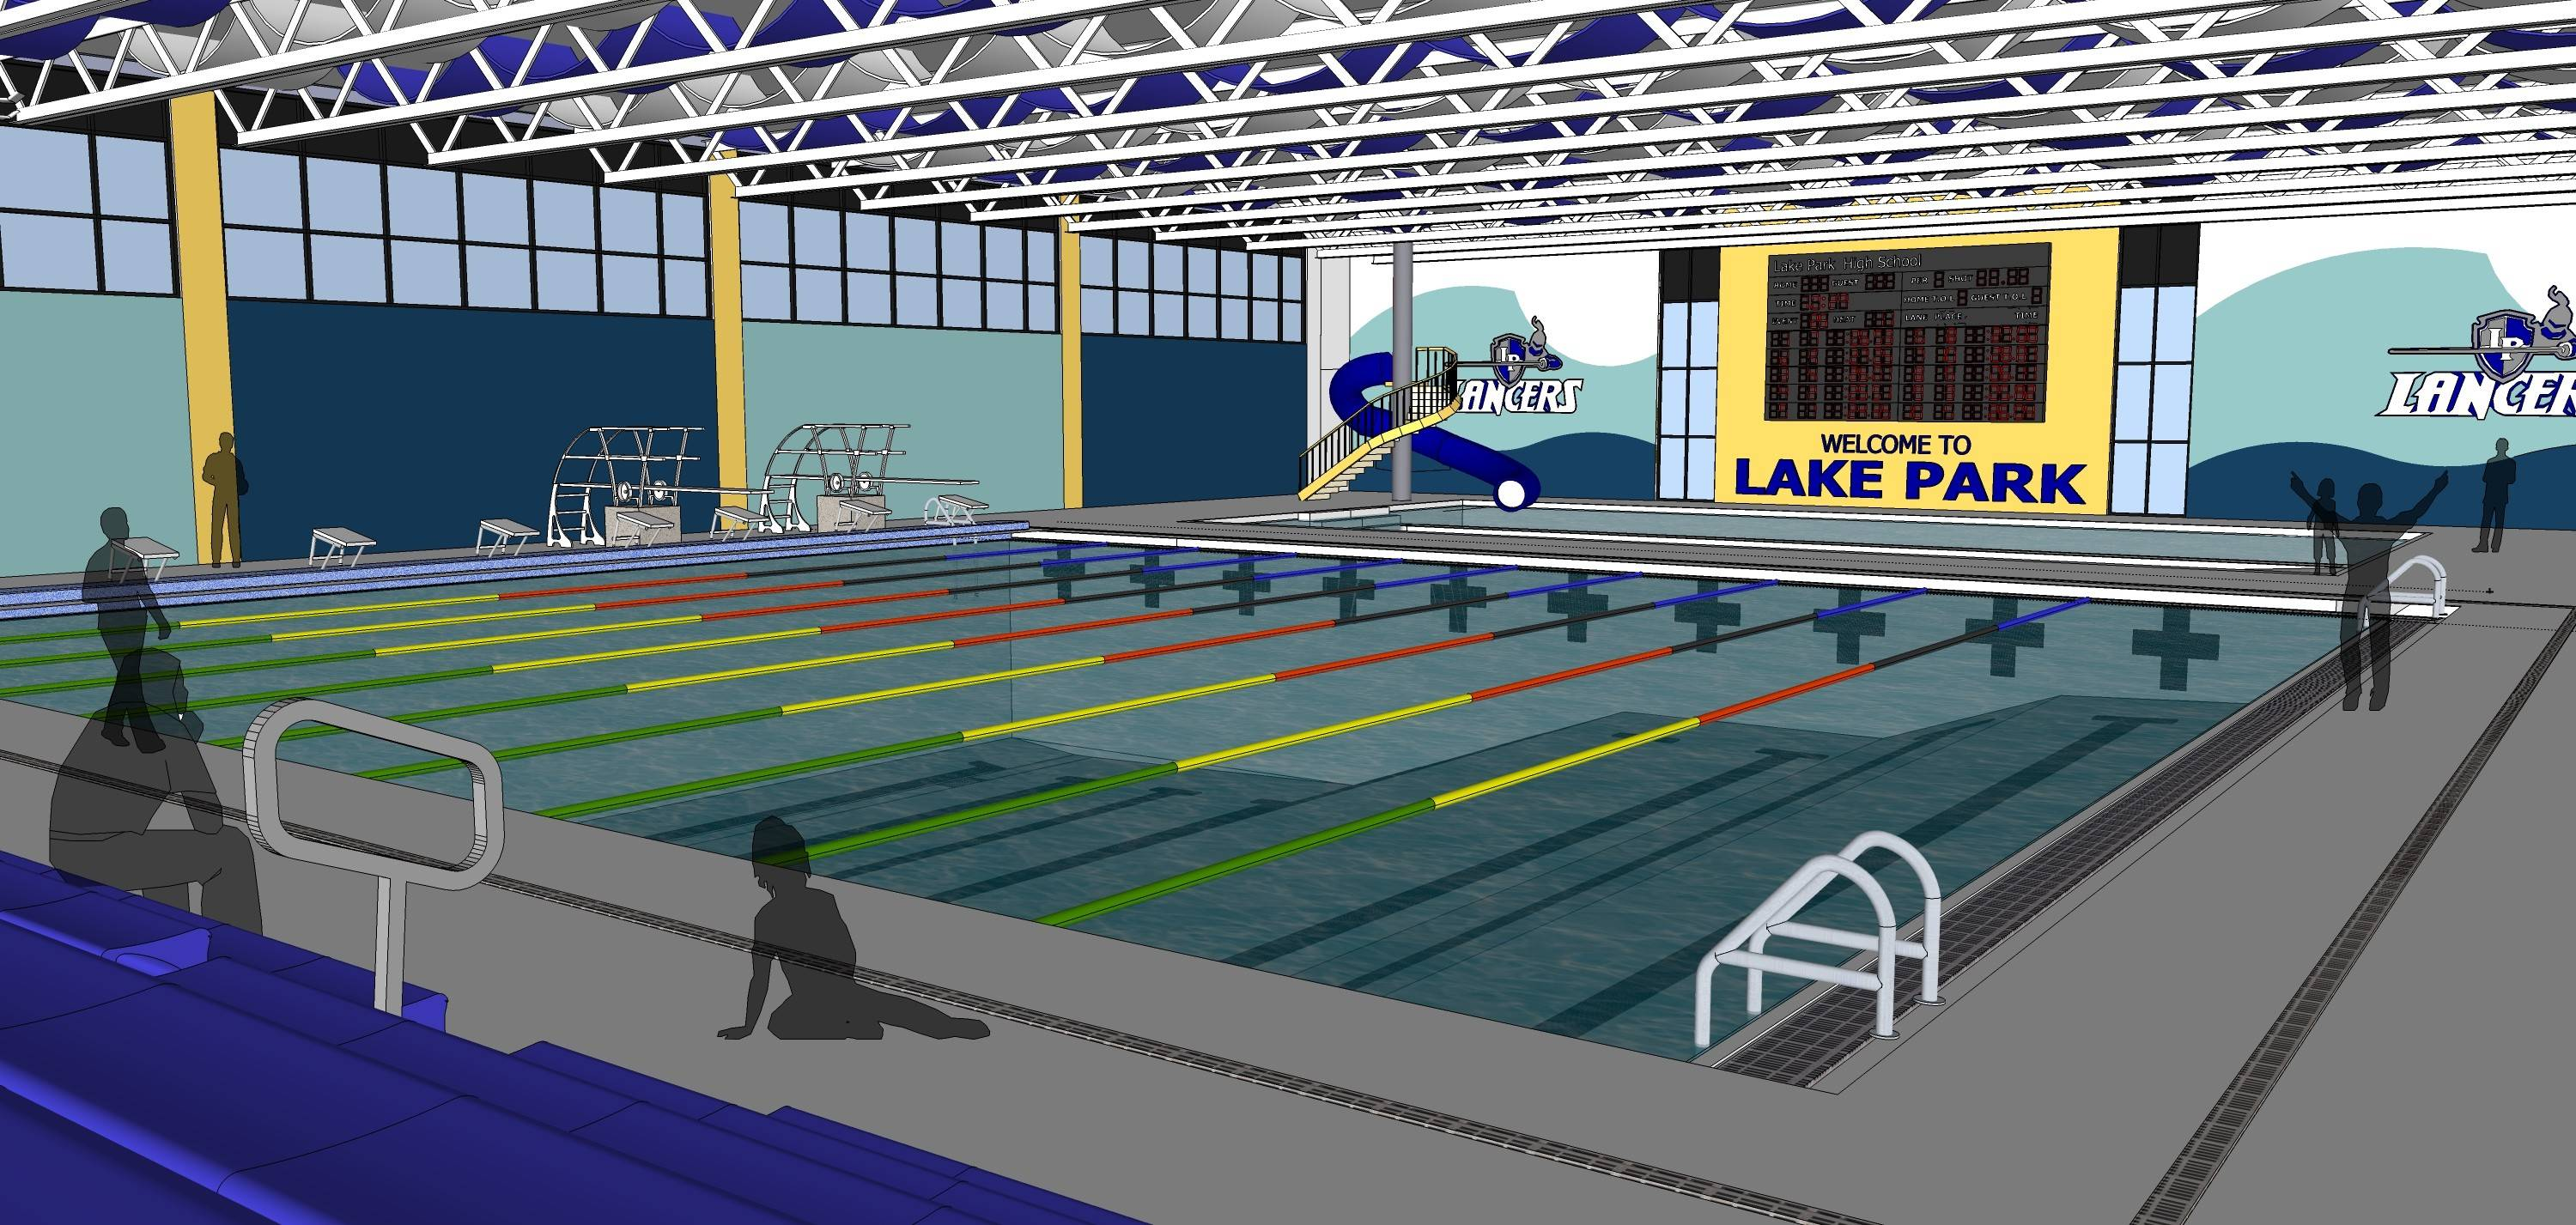 Voters in Lake Park High School District 108 will decide Tuesday whether to fund the construction and operation of an aquatic facility that could be built at Lake Park High School's east campus by fall 2015.